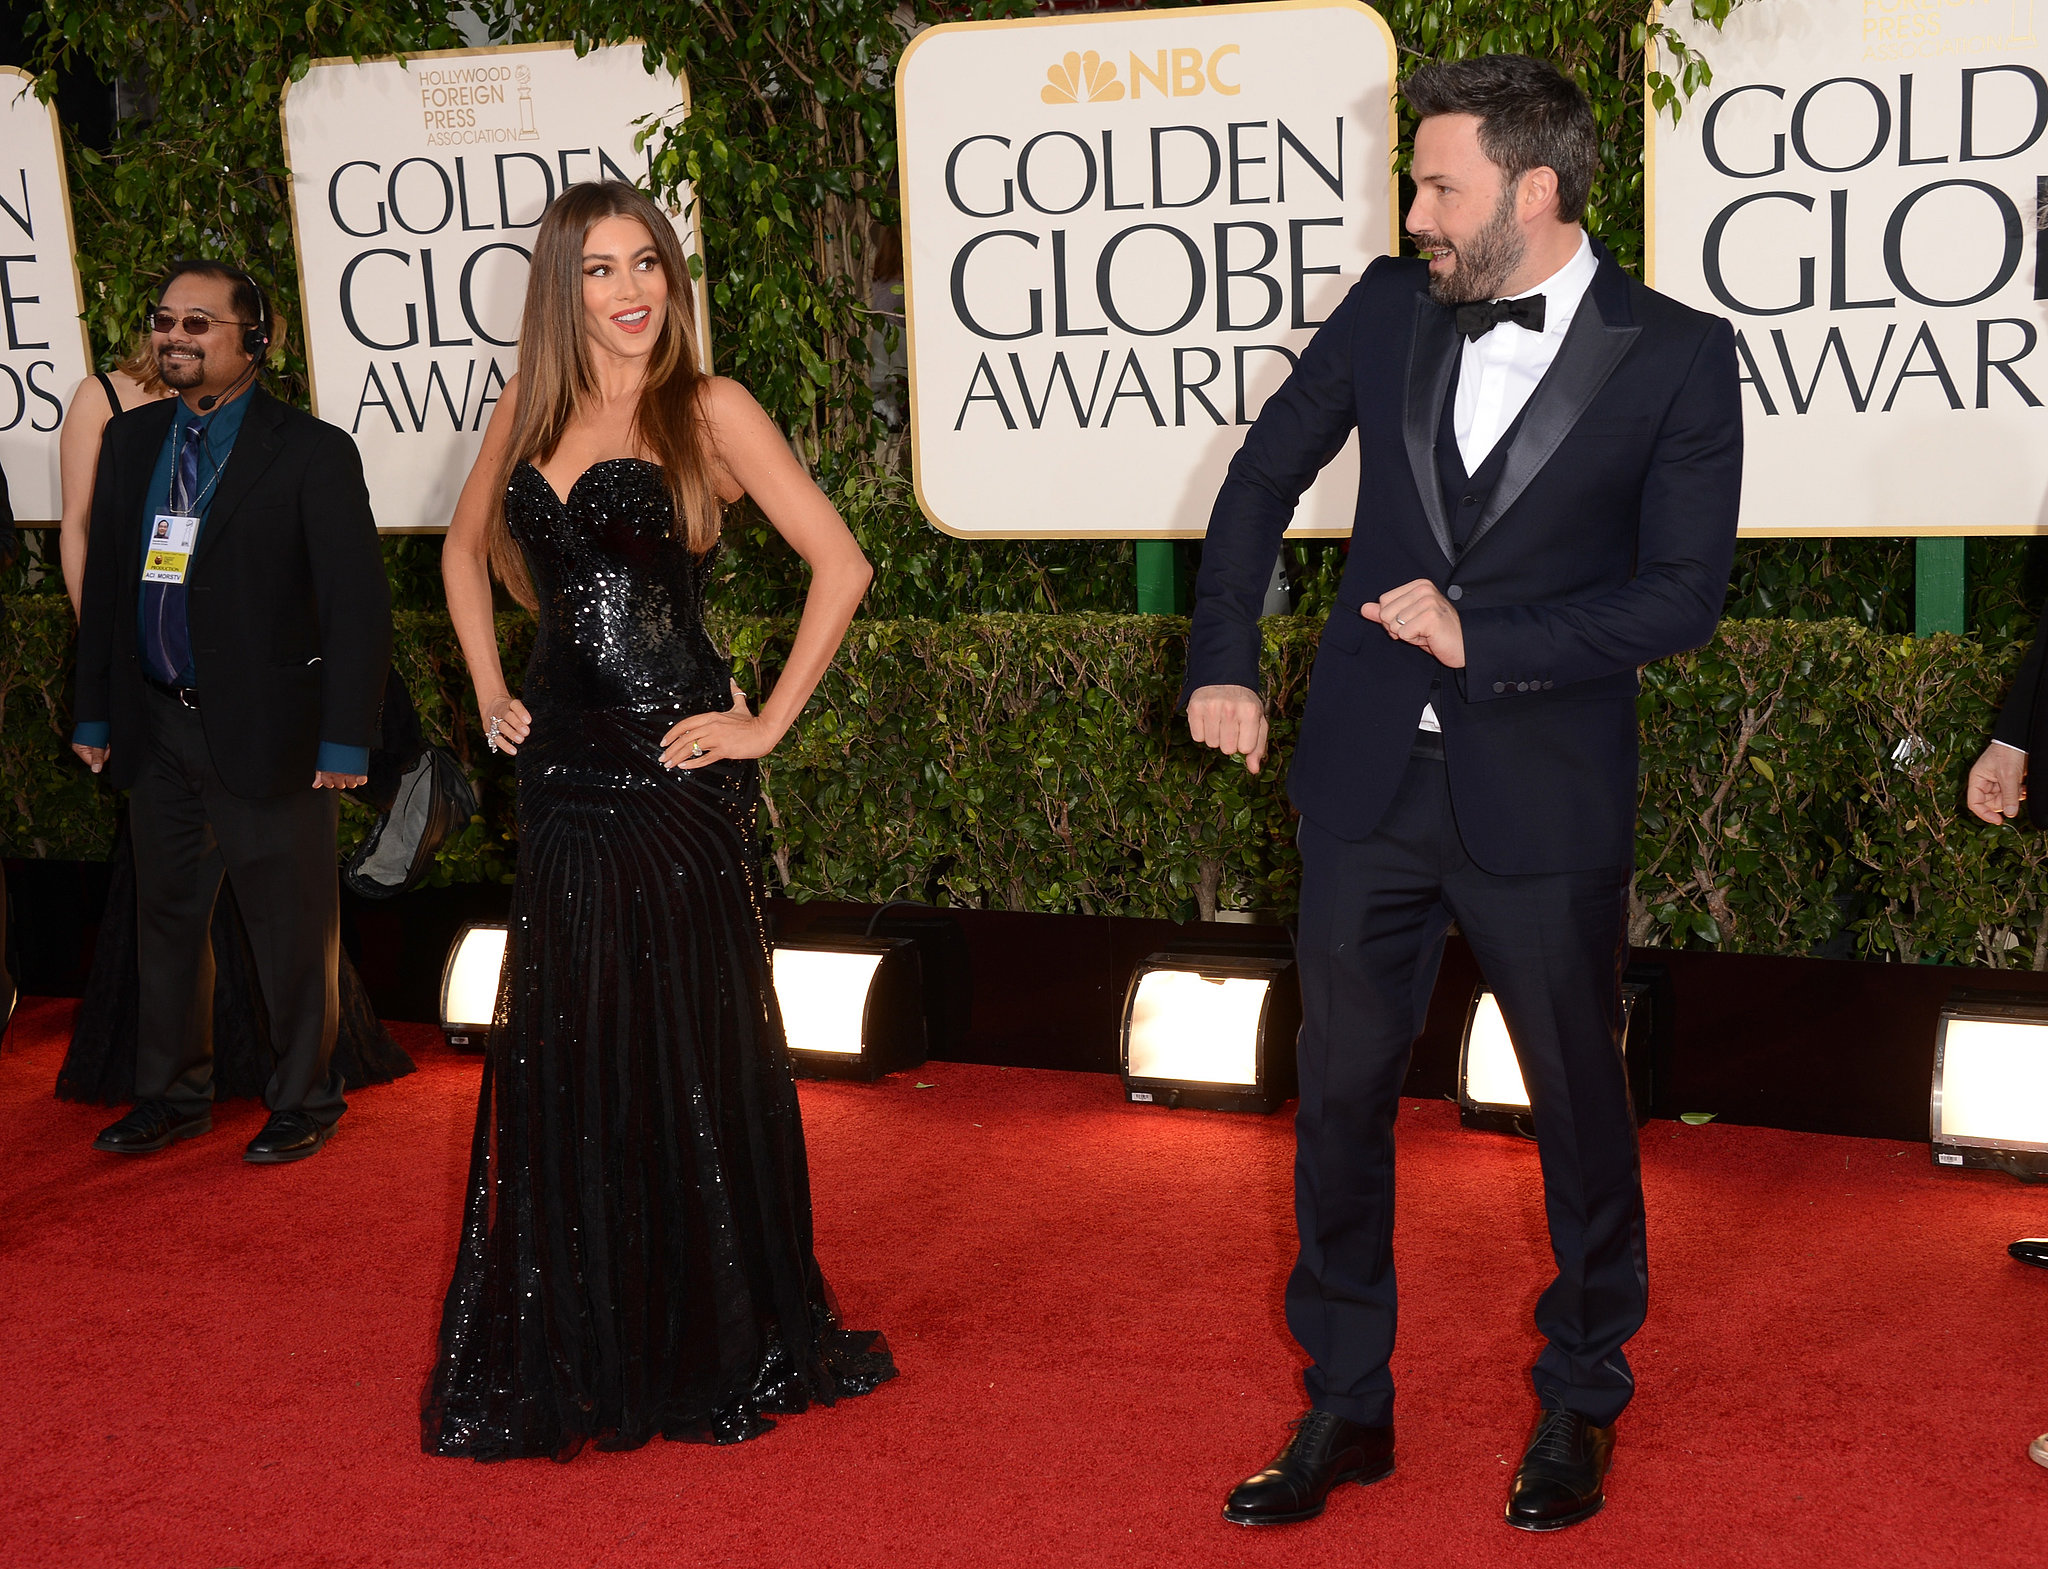 Ben Affleck and Sofia Vergara got playful on the red carpet at the Golden Globes.